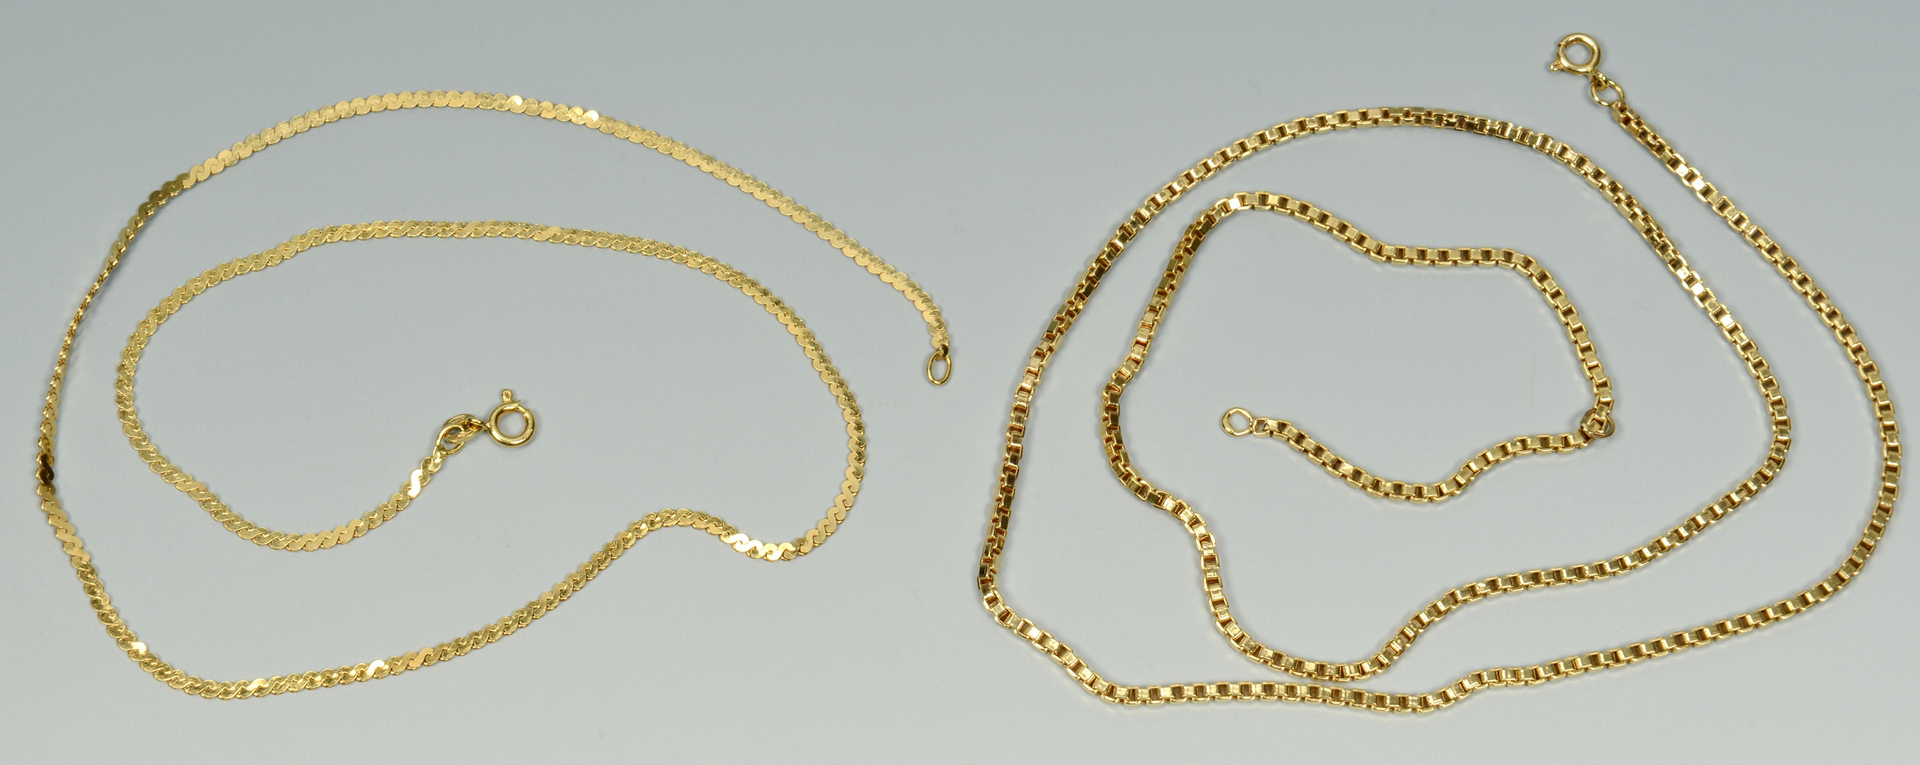 Lot 3088060: Two 18k Gold Chain Necklaces